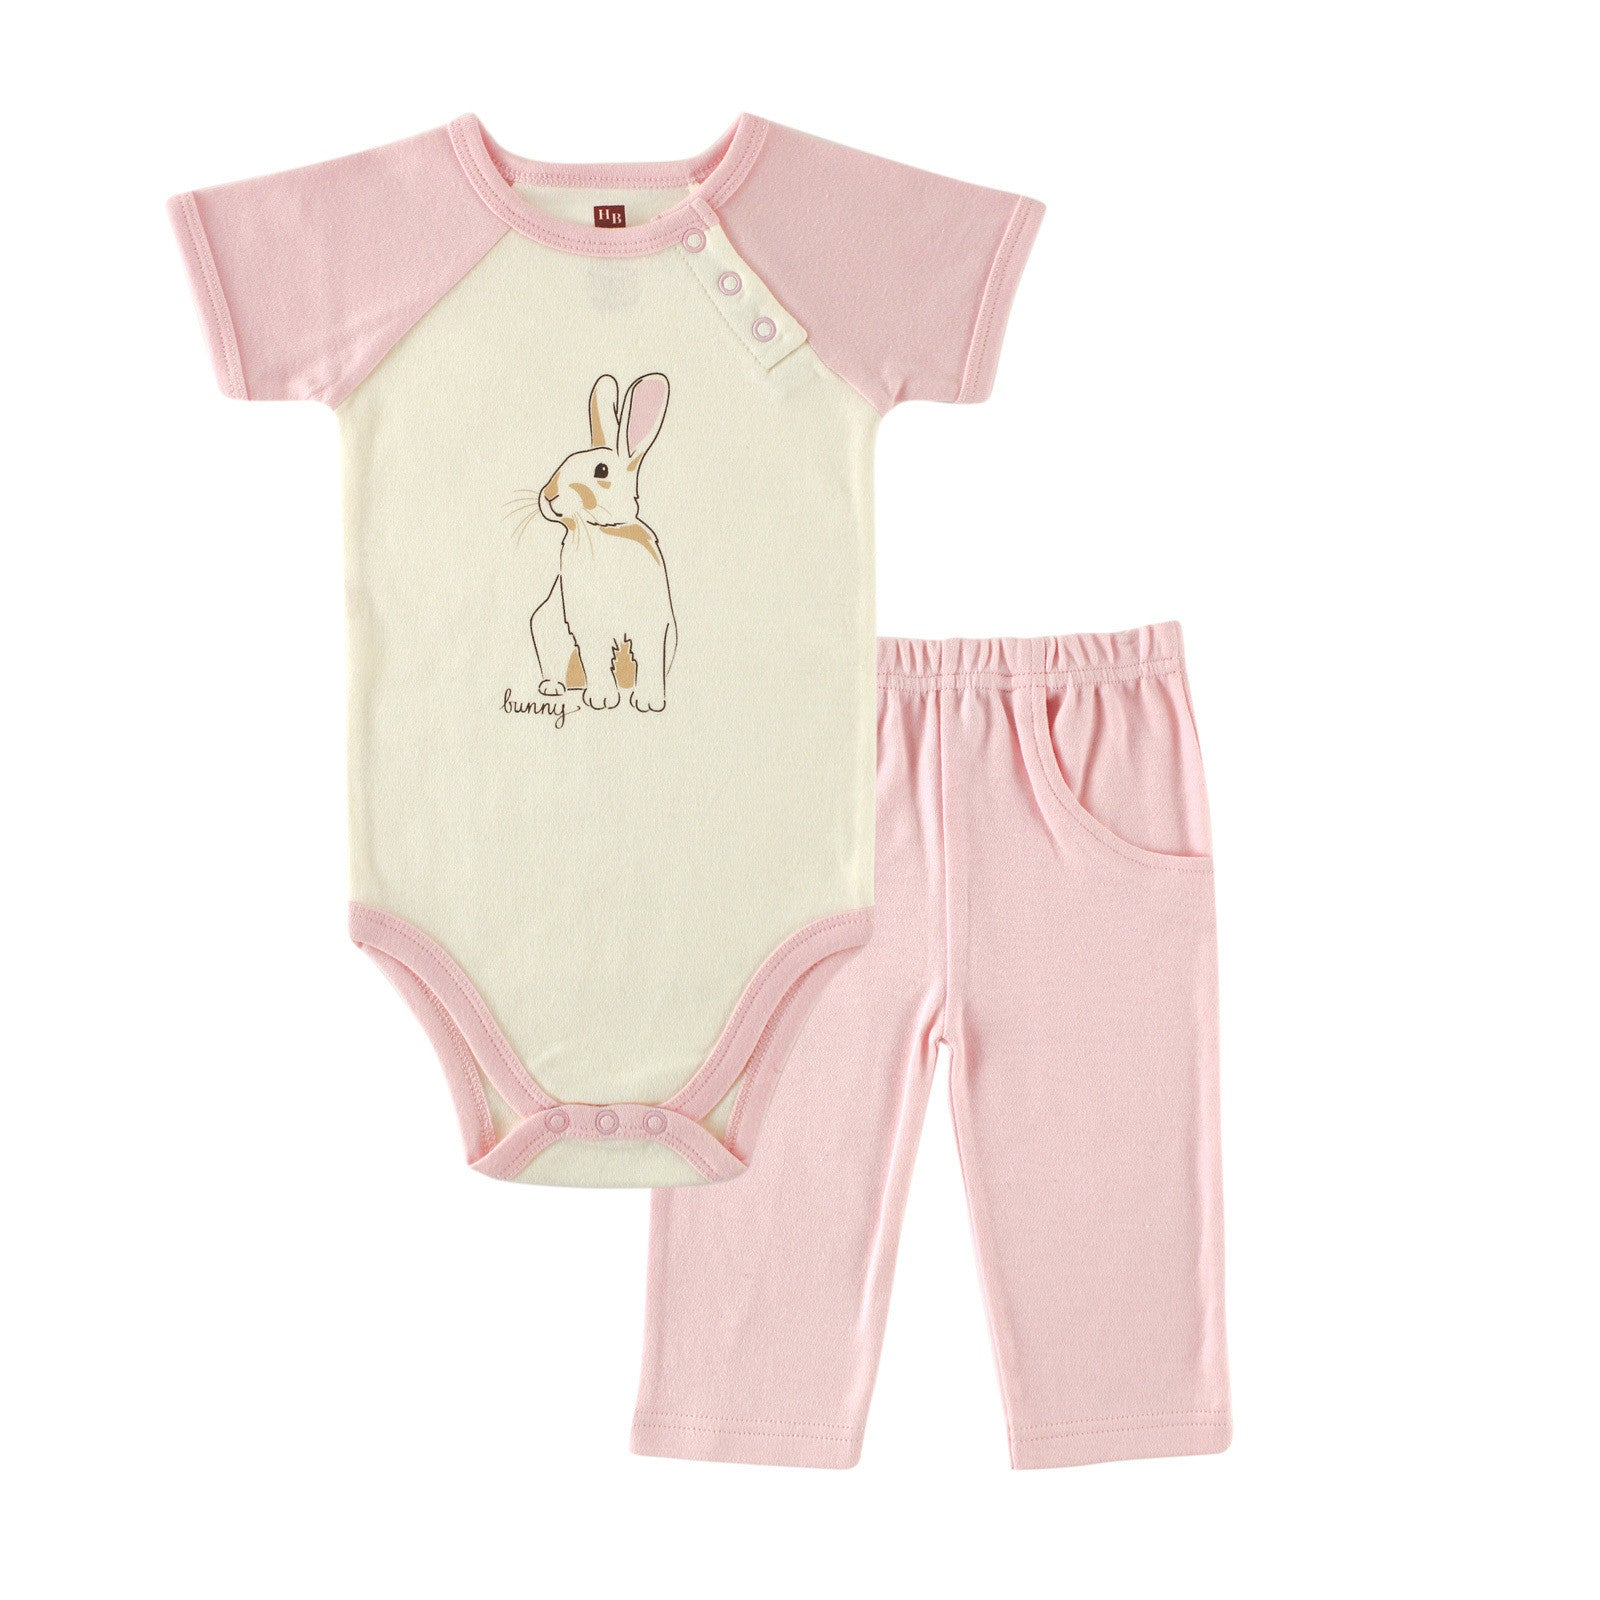 Bunny Bodysuit And Pant Set